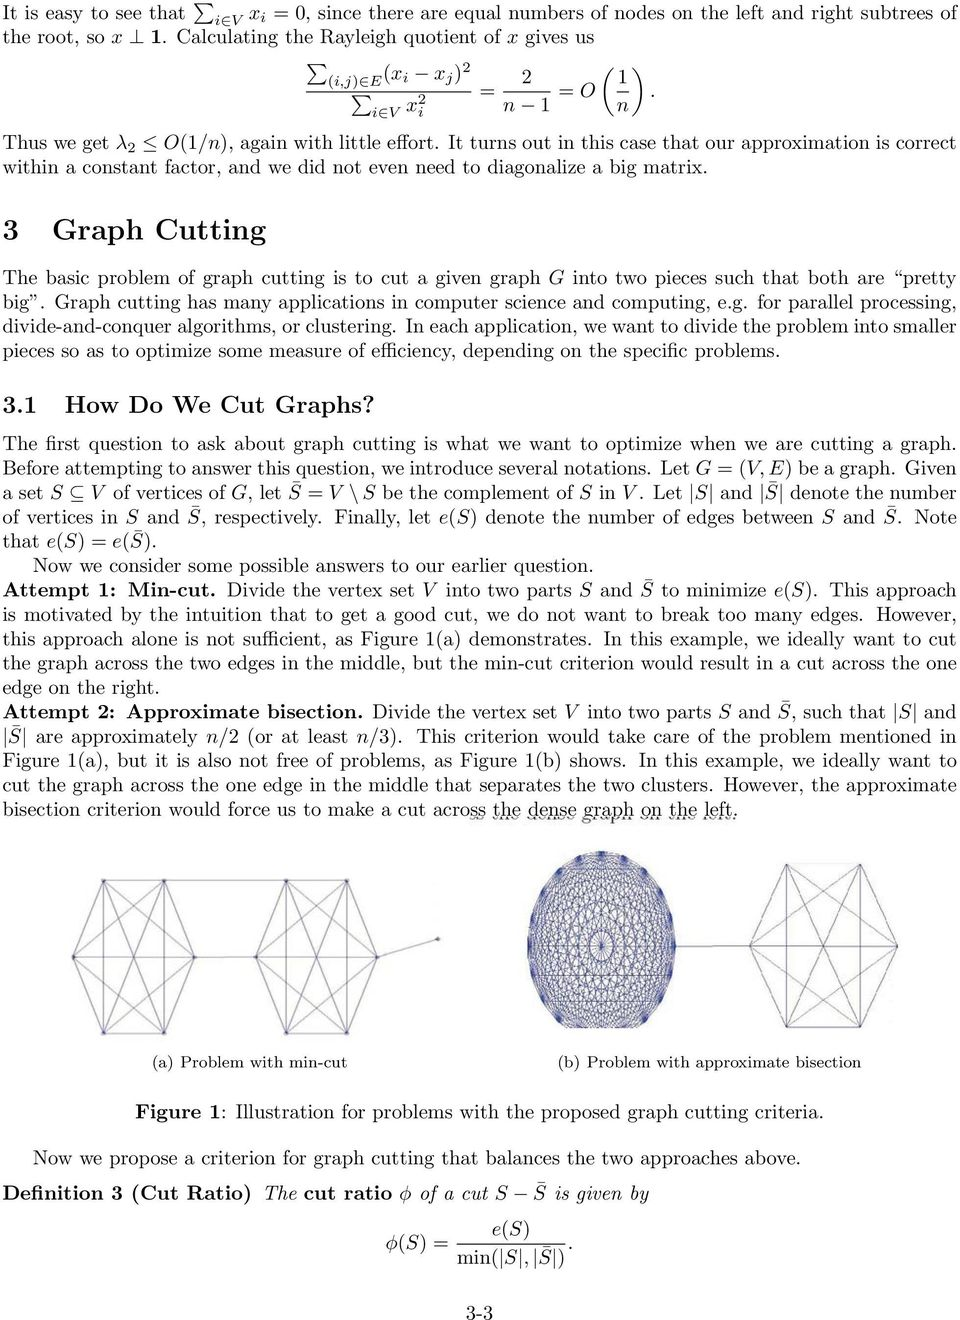 3 Graph Cuttig The basic problem of graph cuttig is to cut a give graph G ito two pieces such that both are pretty big. Graph cuttig has may applicatios i computer sciece ad computig, e.g. for parallel processig, divide-ad-coquer algorithms, or clusterig.